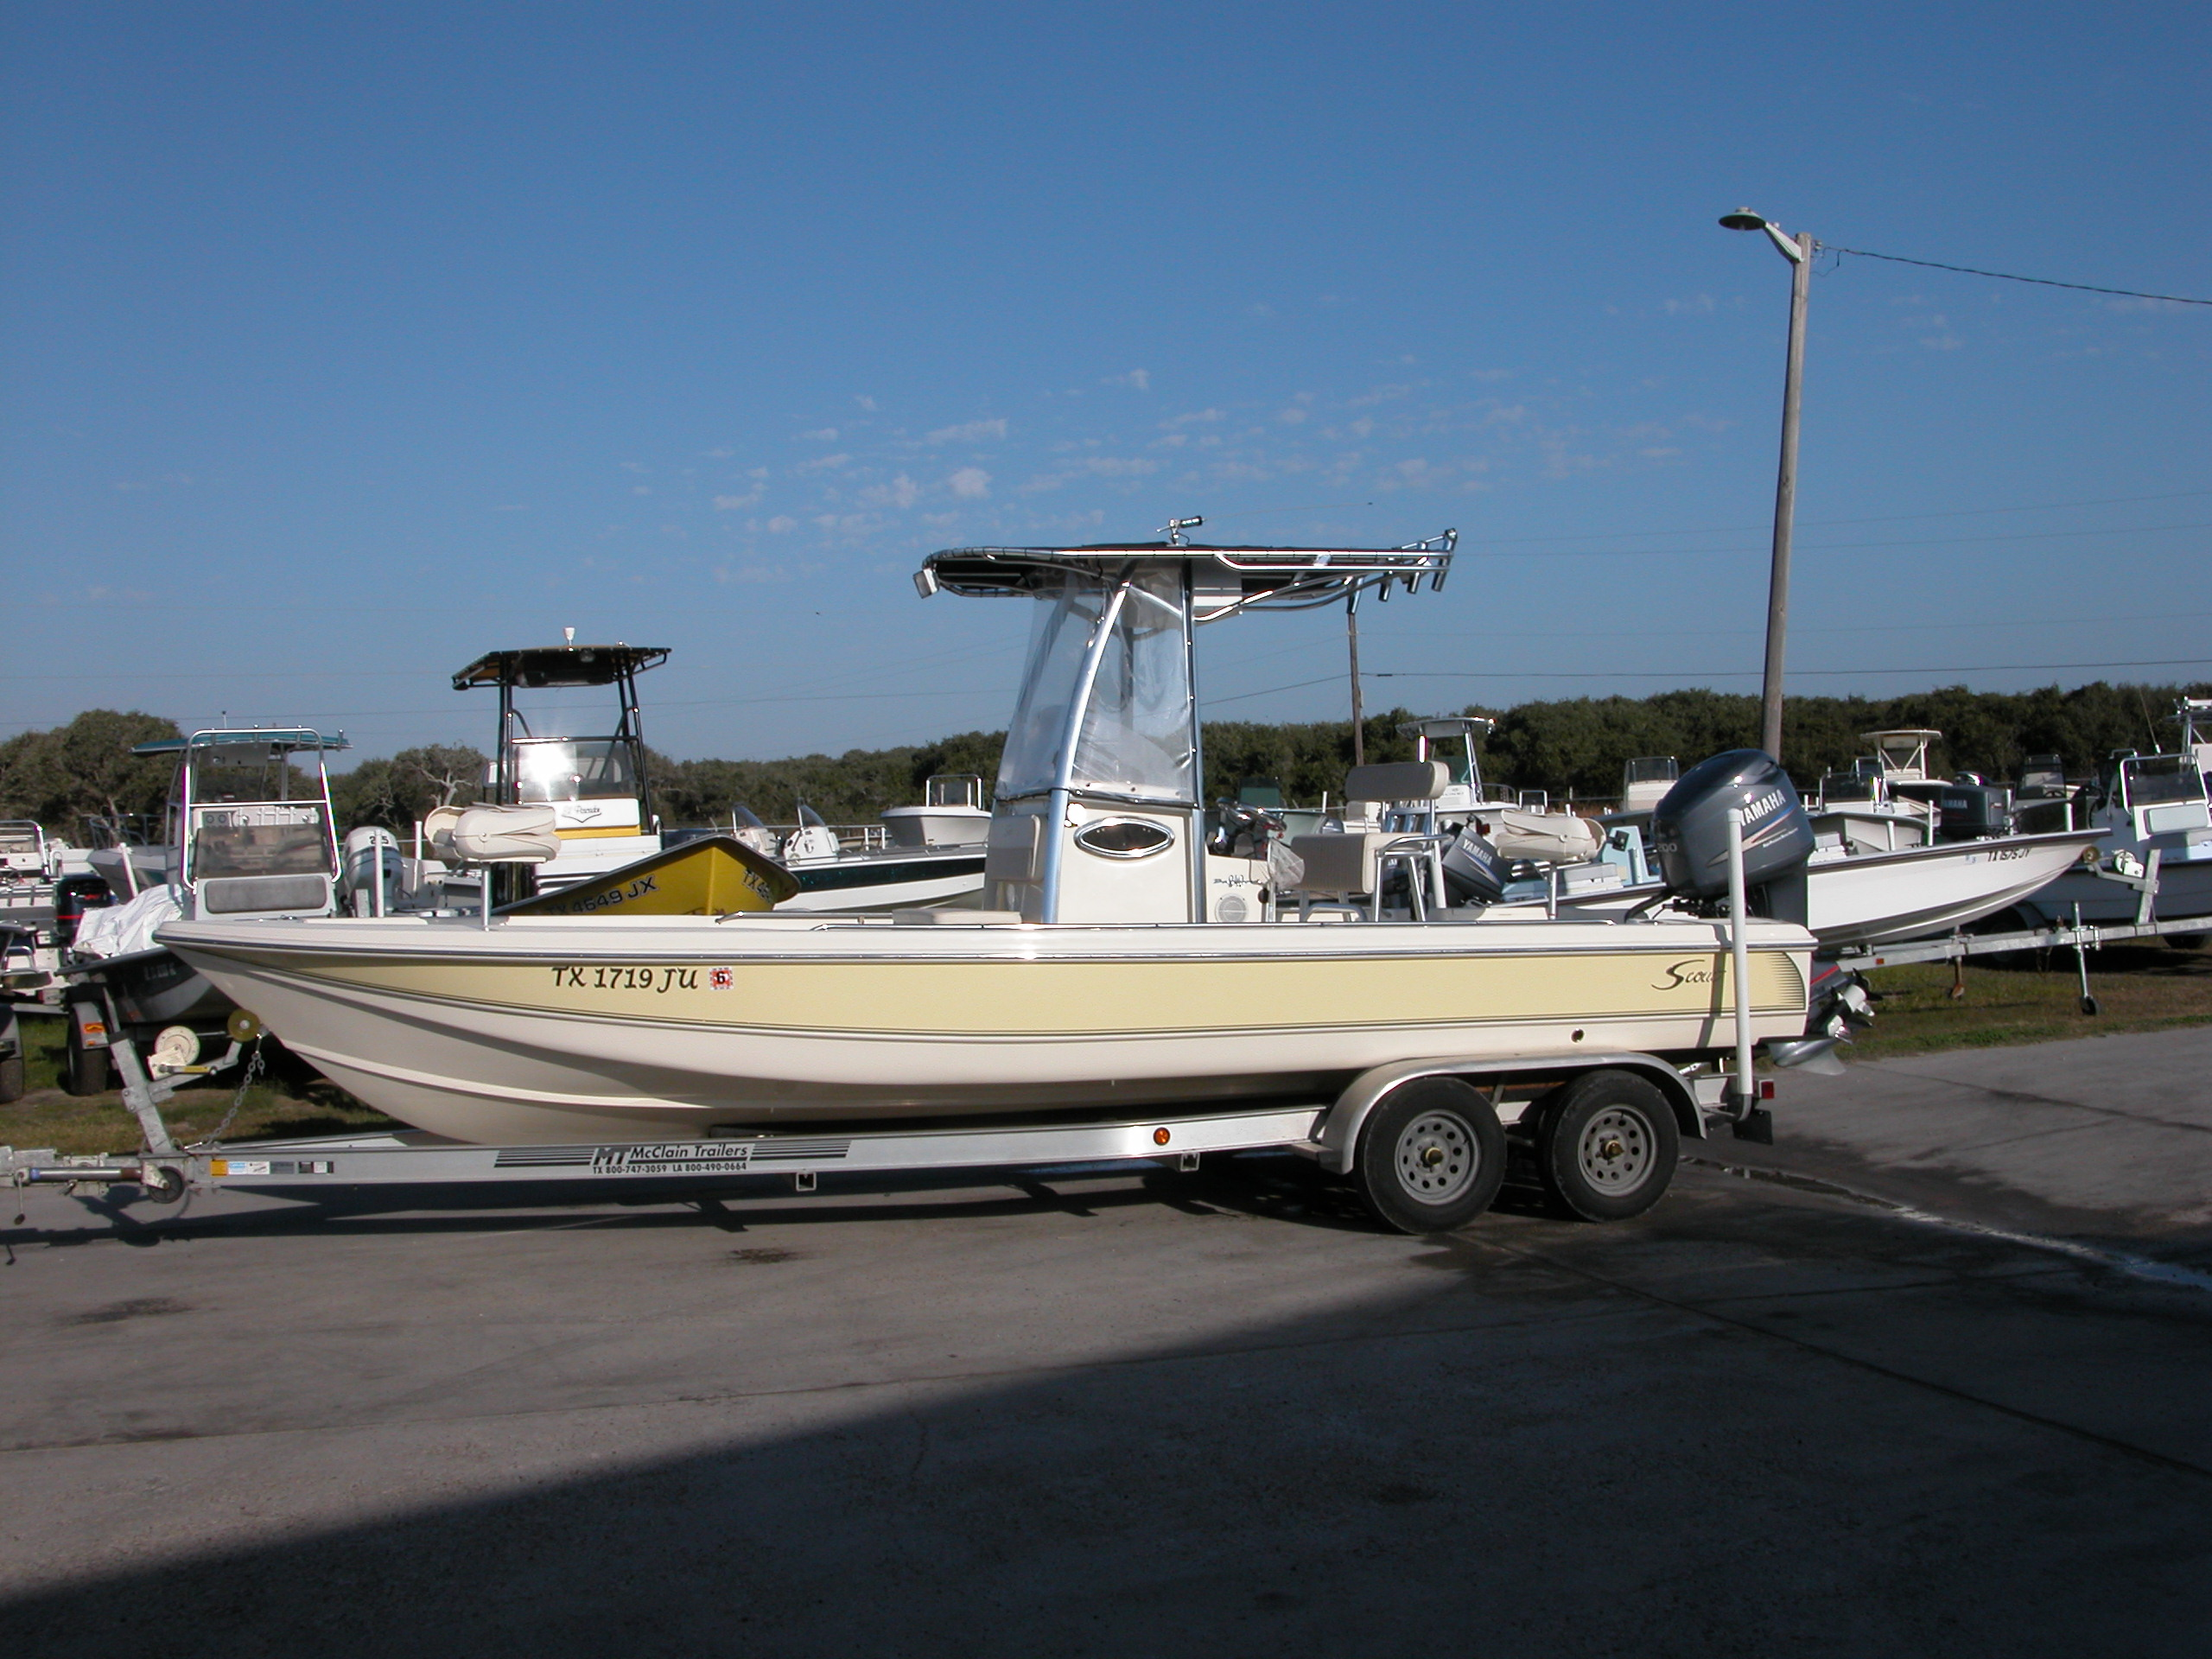 Fishing boats for sale in san antonio used boats on html for Used fishing boats for sale in iowa